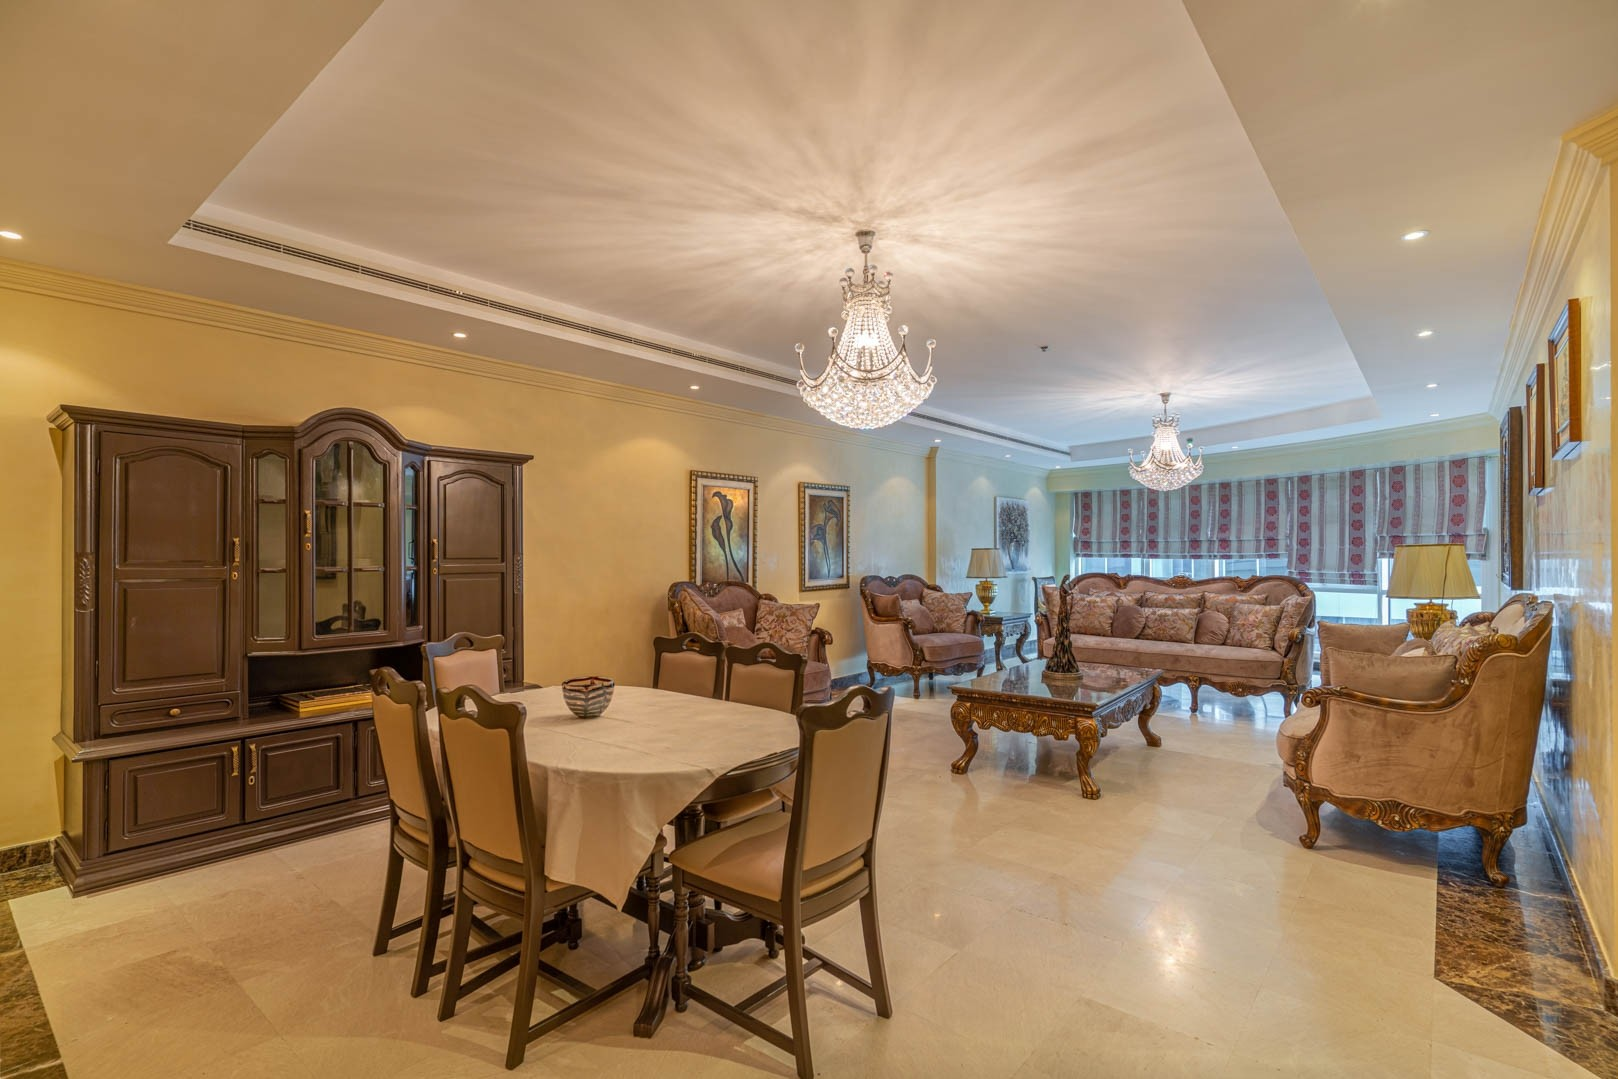 Quality Finishes | Spacious Family Home in Marina